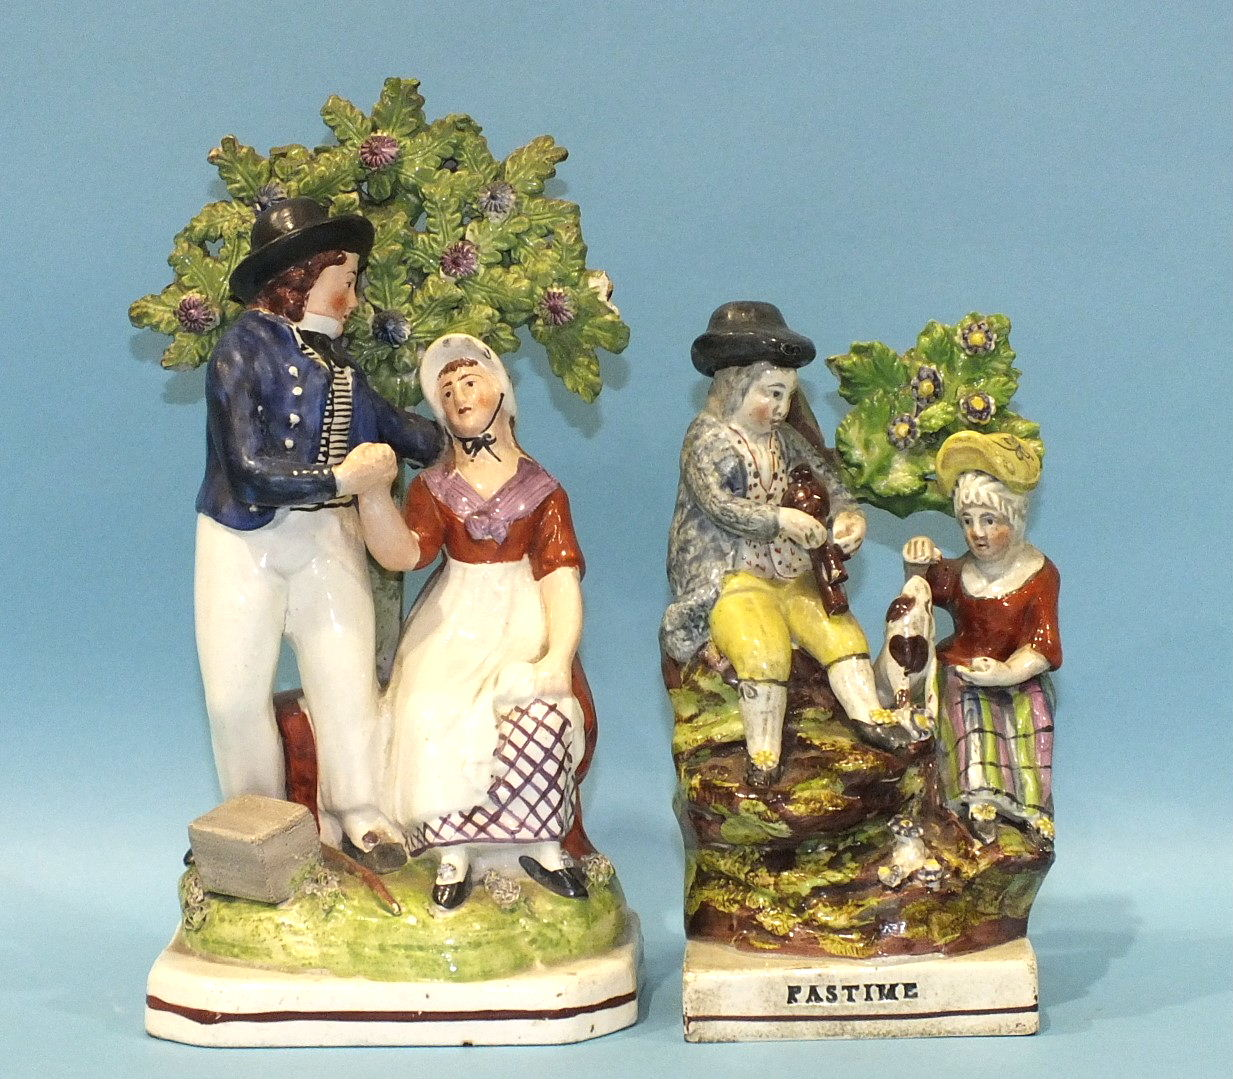 Lot 140 - An early-19th century Staffordshire pearlware group Pastime and a similar group The Sailor's Return,